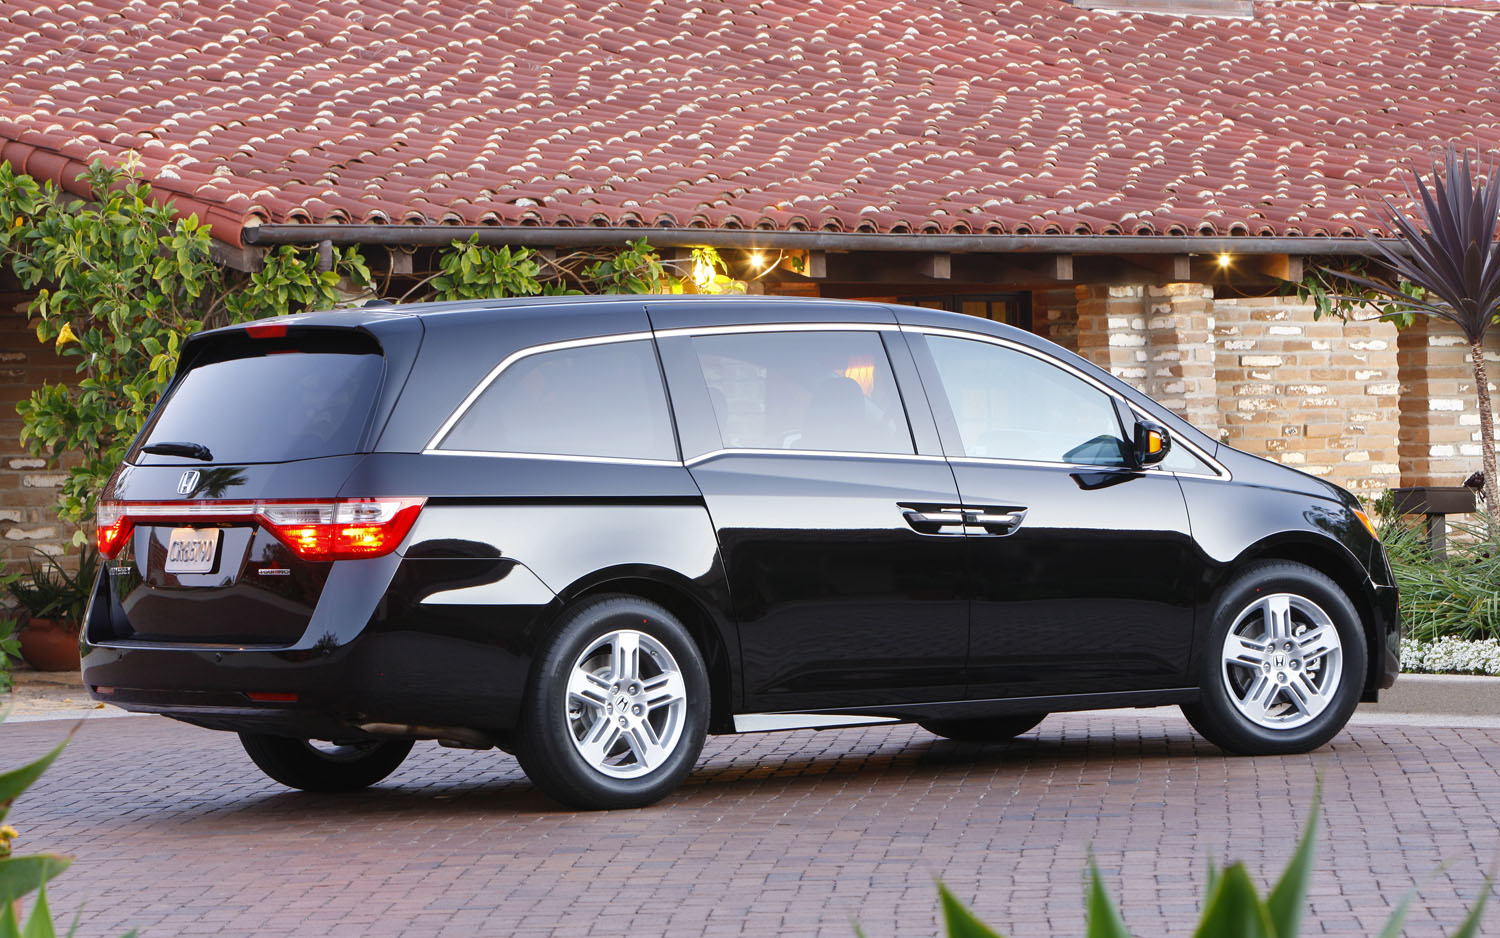 2012 honda odyssey pricing start at 29 035. Black Bedroom Furniture Sets. Home Design Ideas